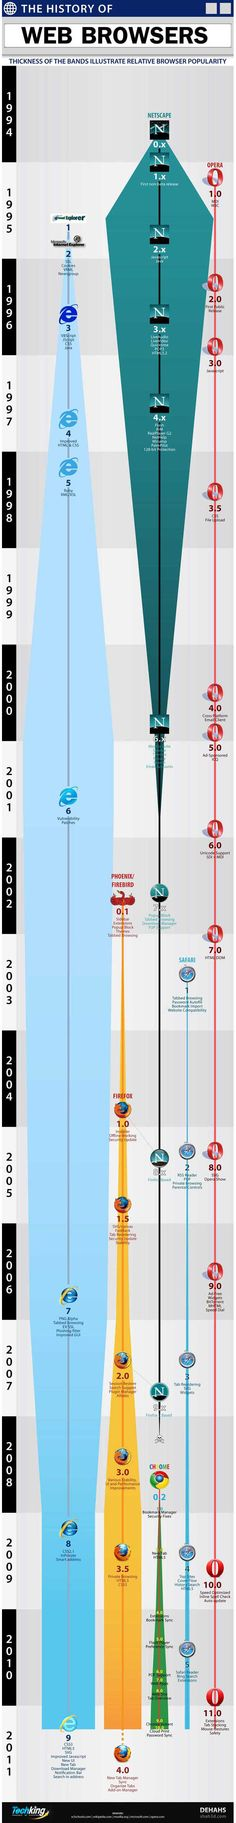 The history of Web Browsers. The clarity of this surprised me.